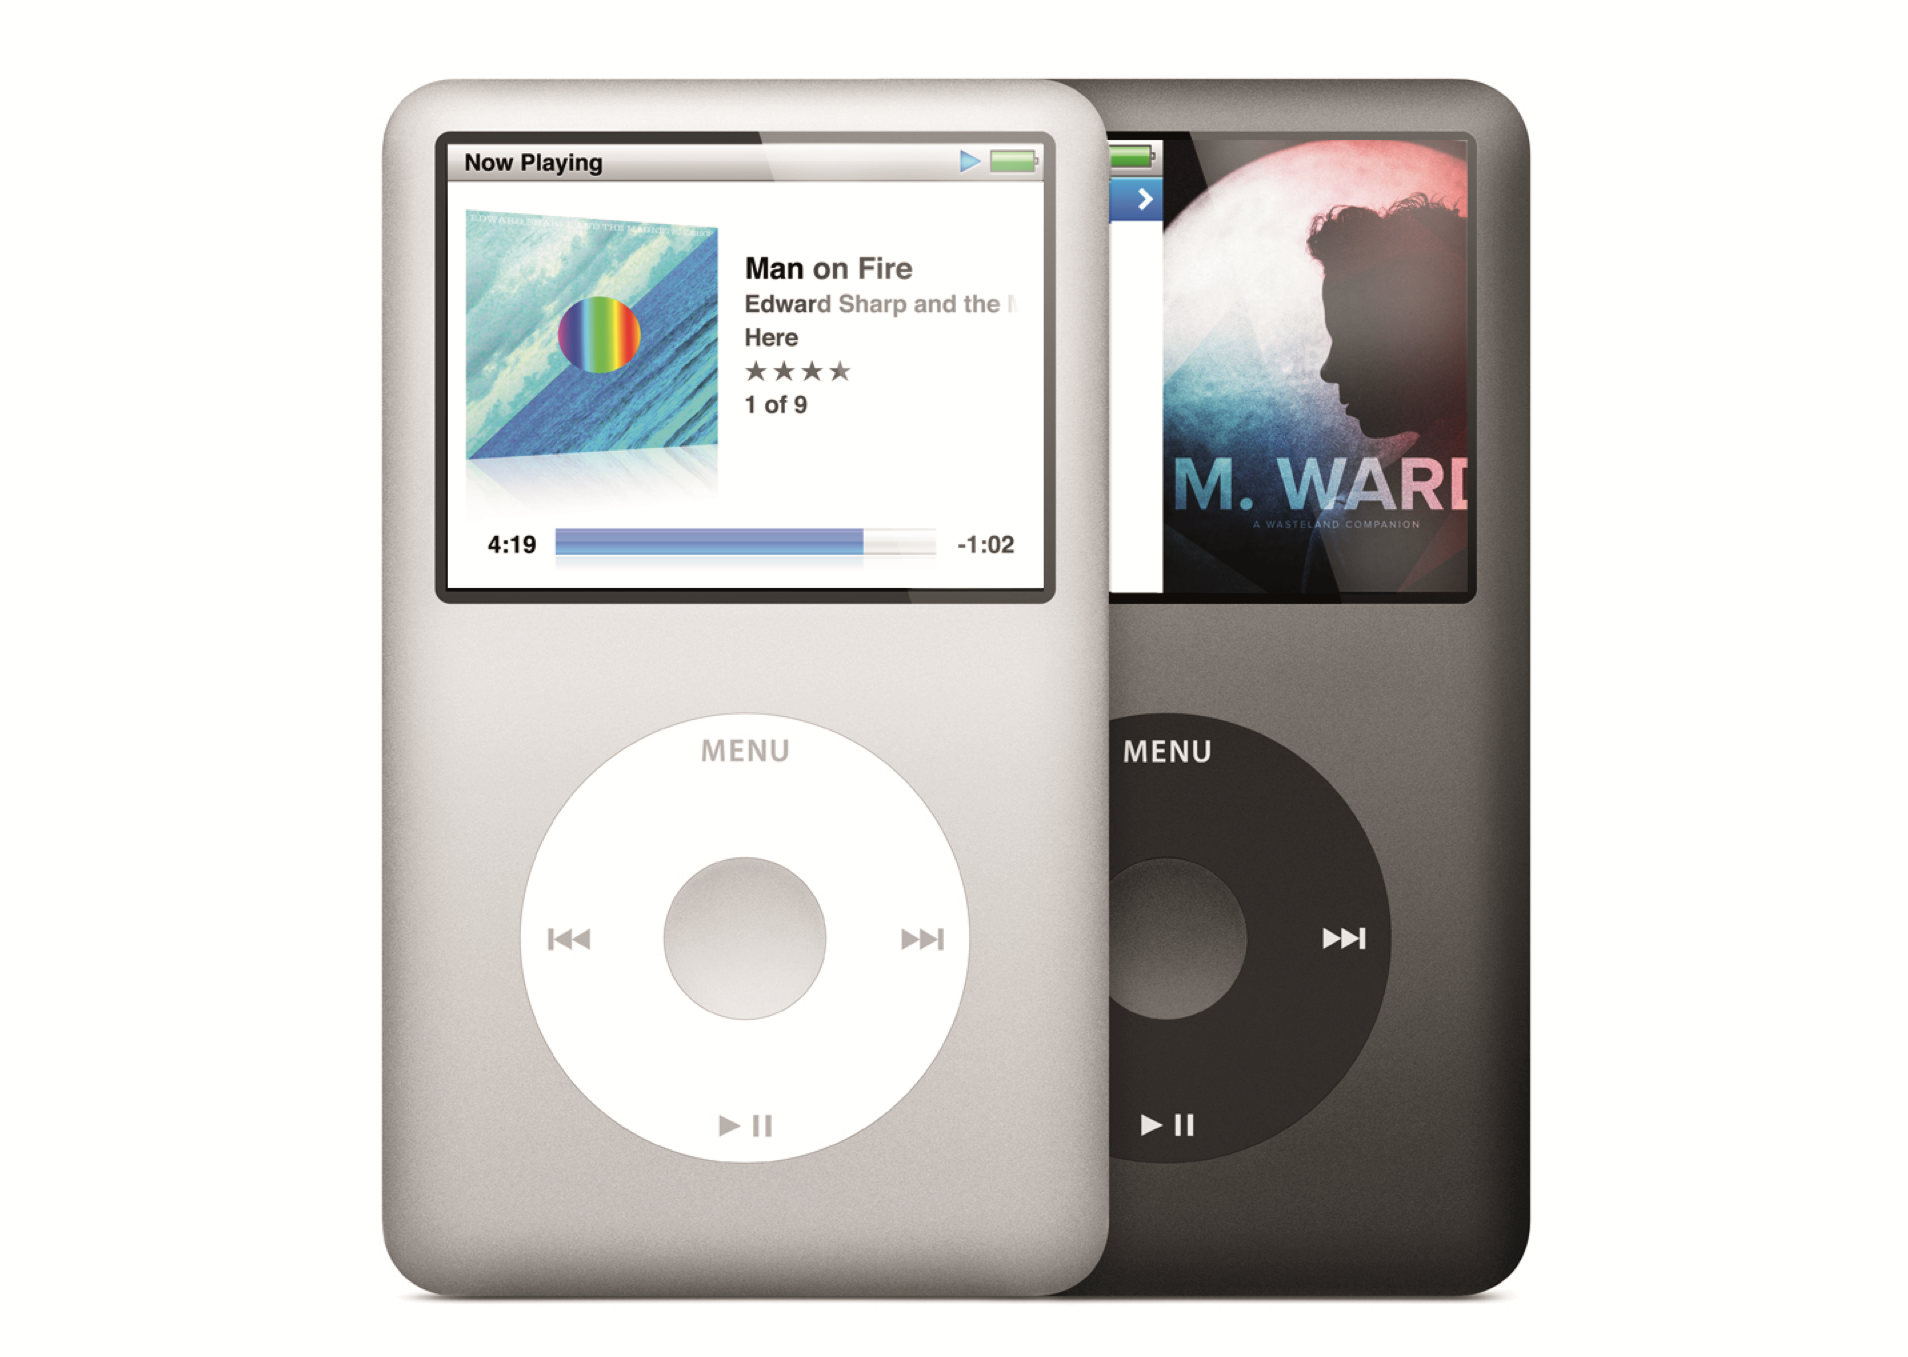 Apple Retires the iPod Classic and Iconic Click Wheel